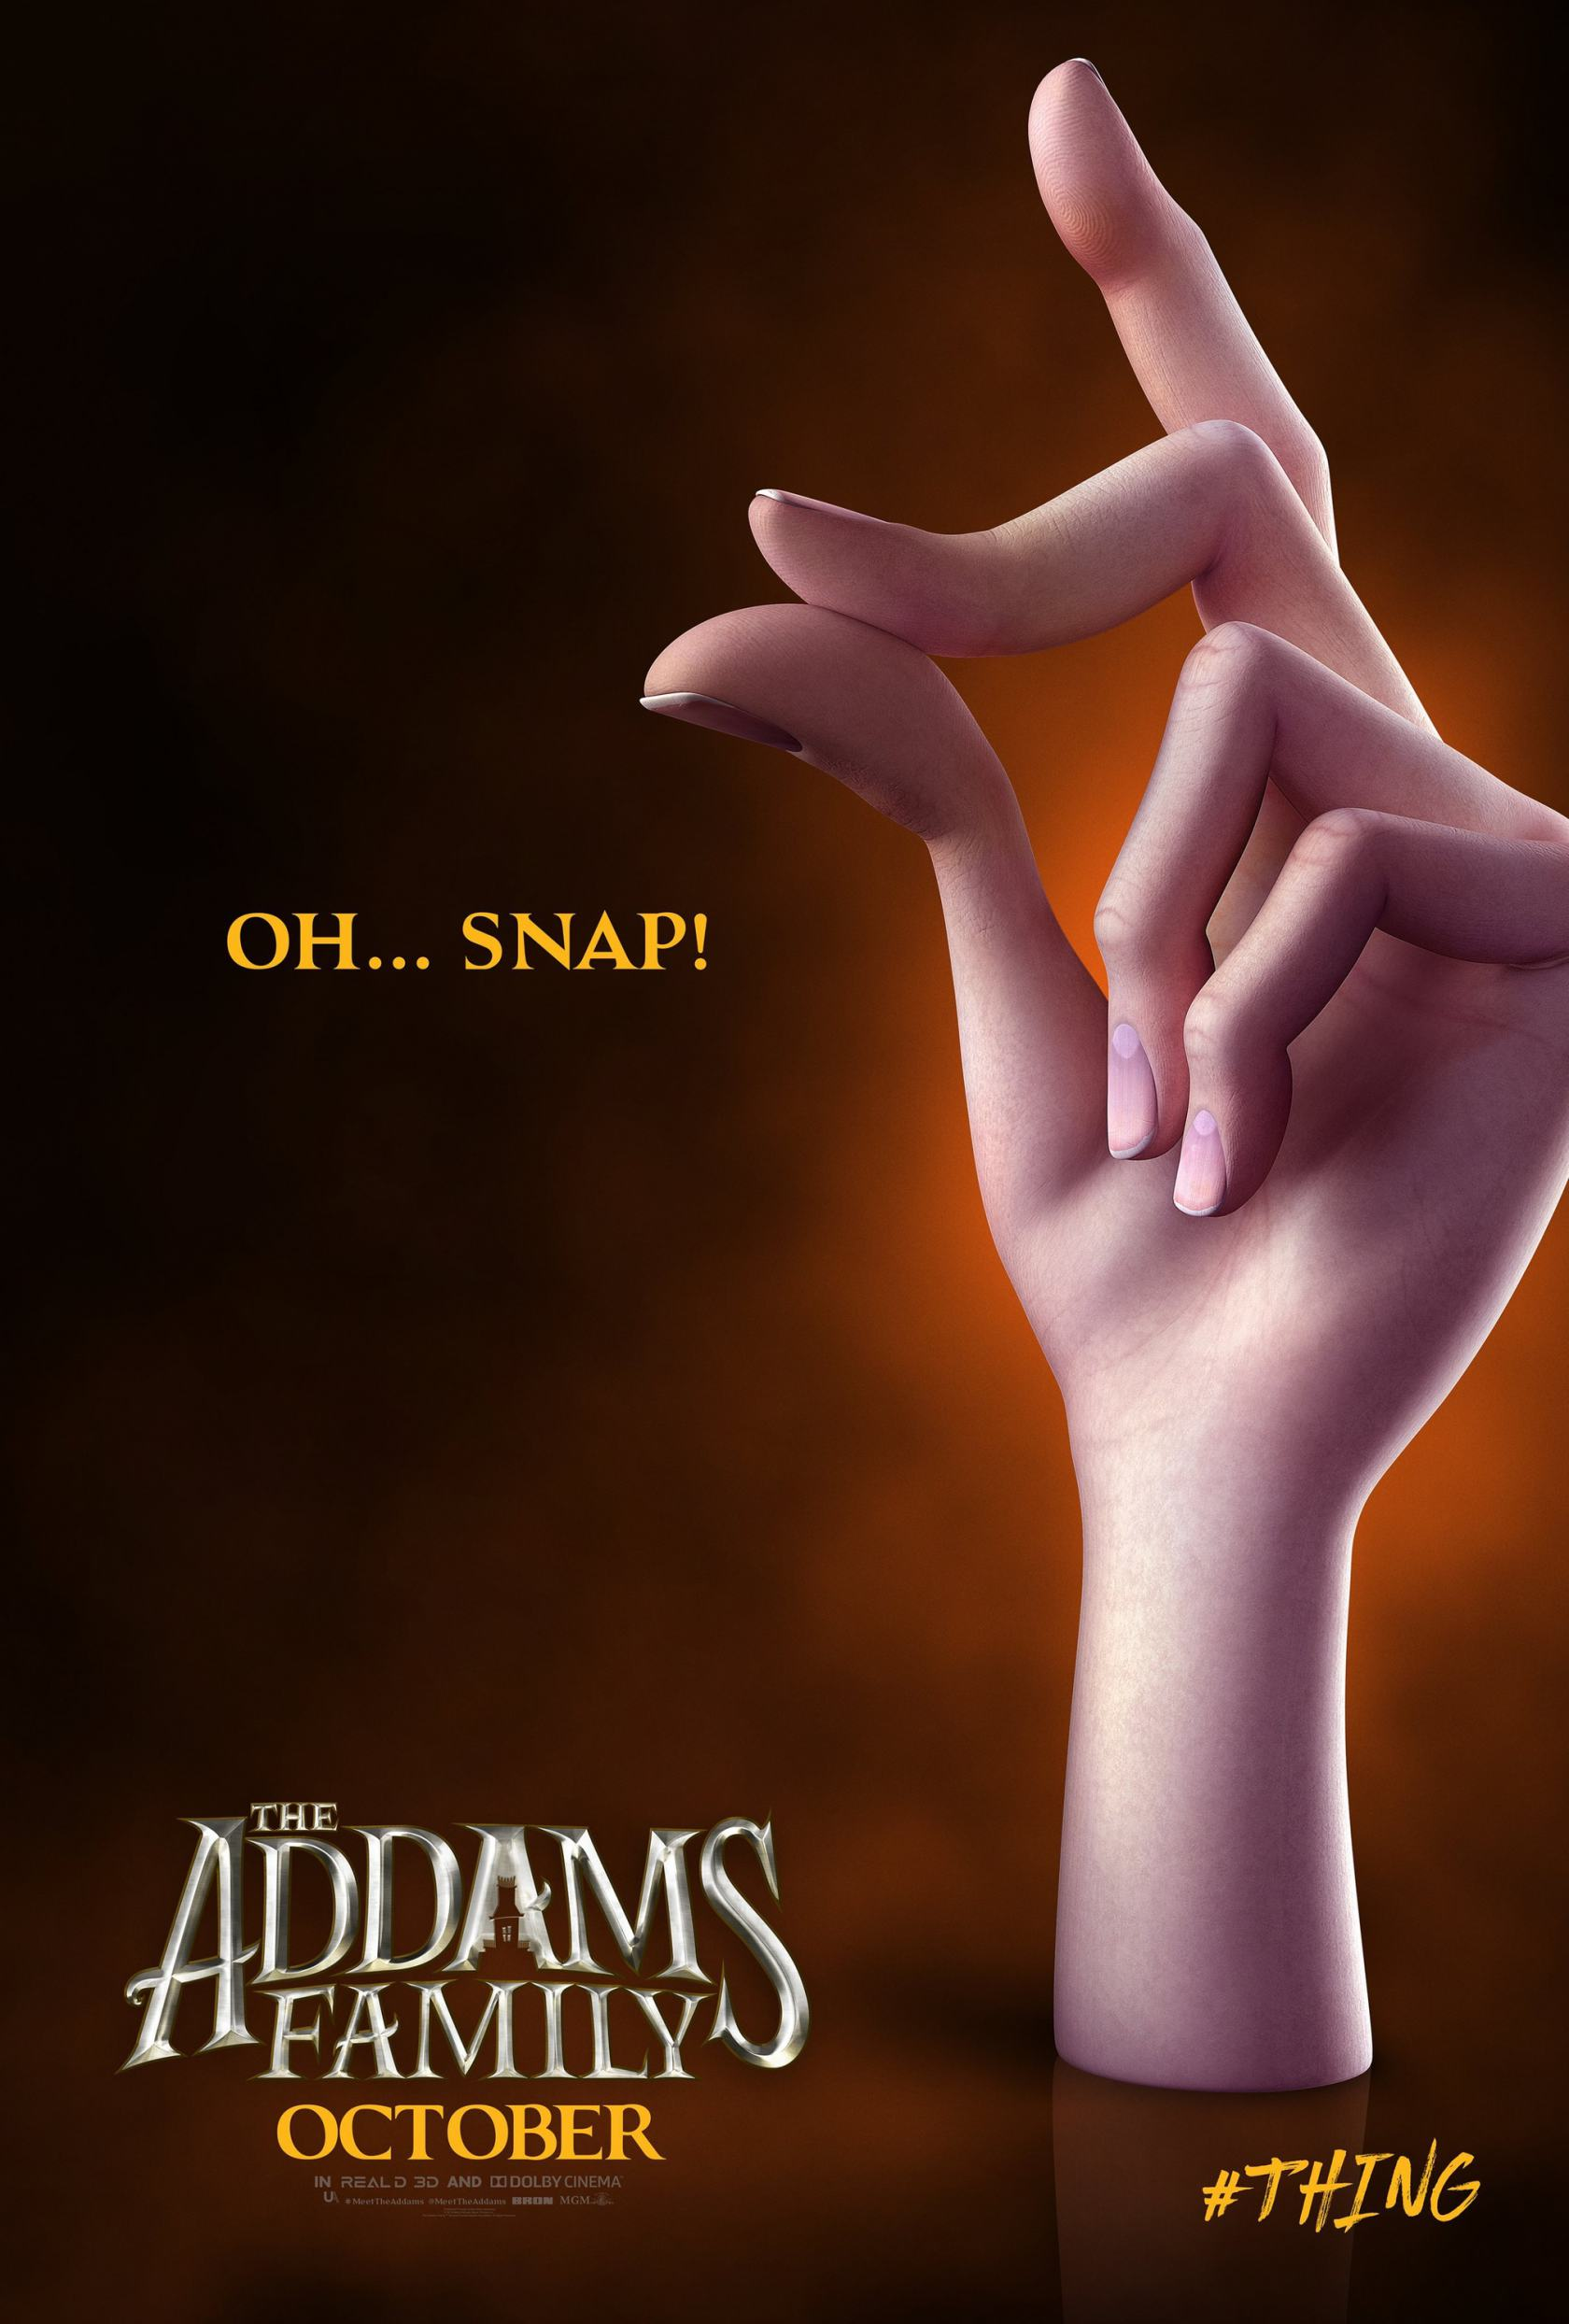 The Addams Family Poster #7